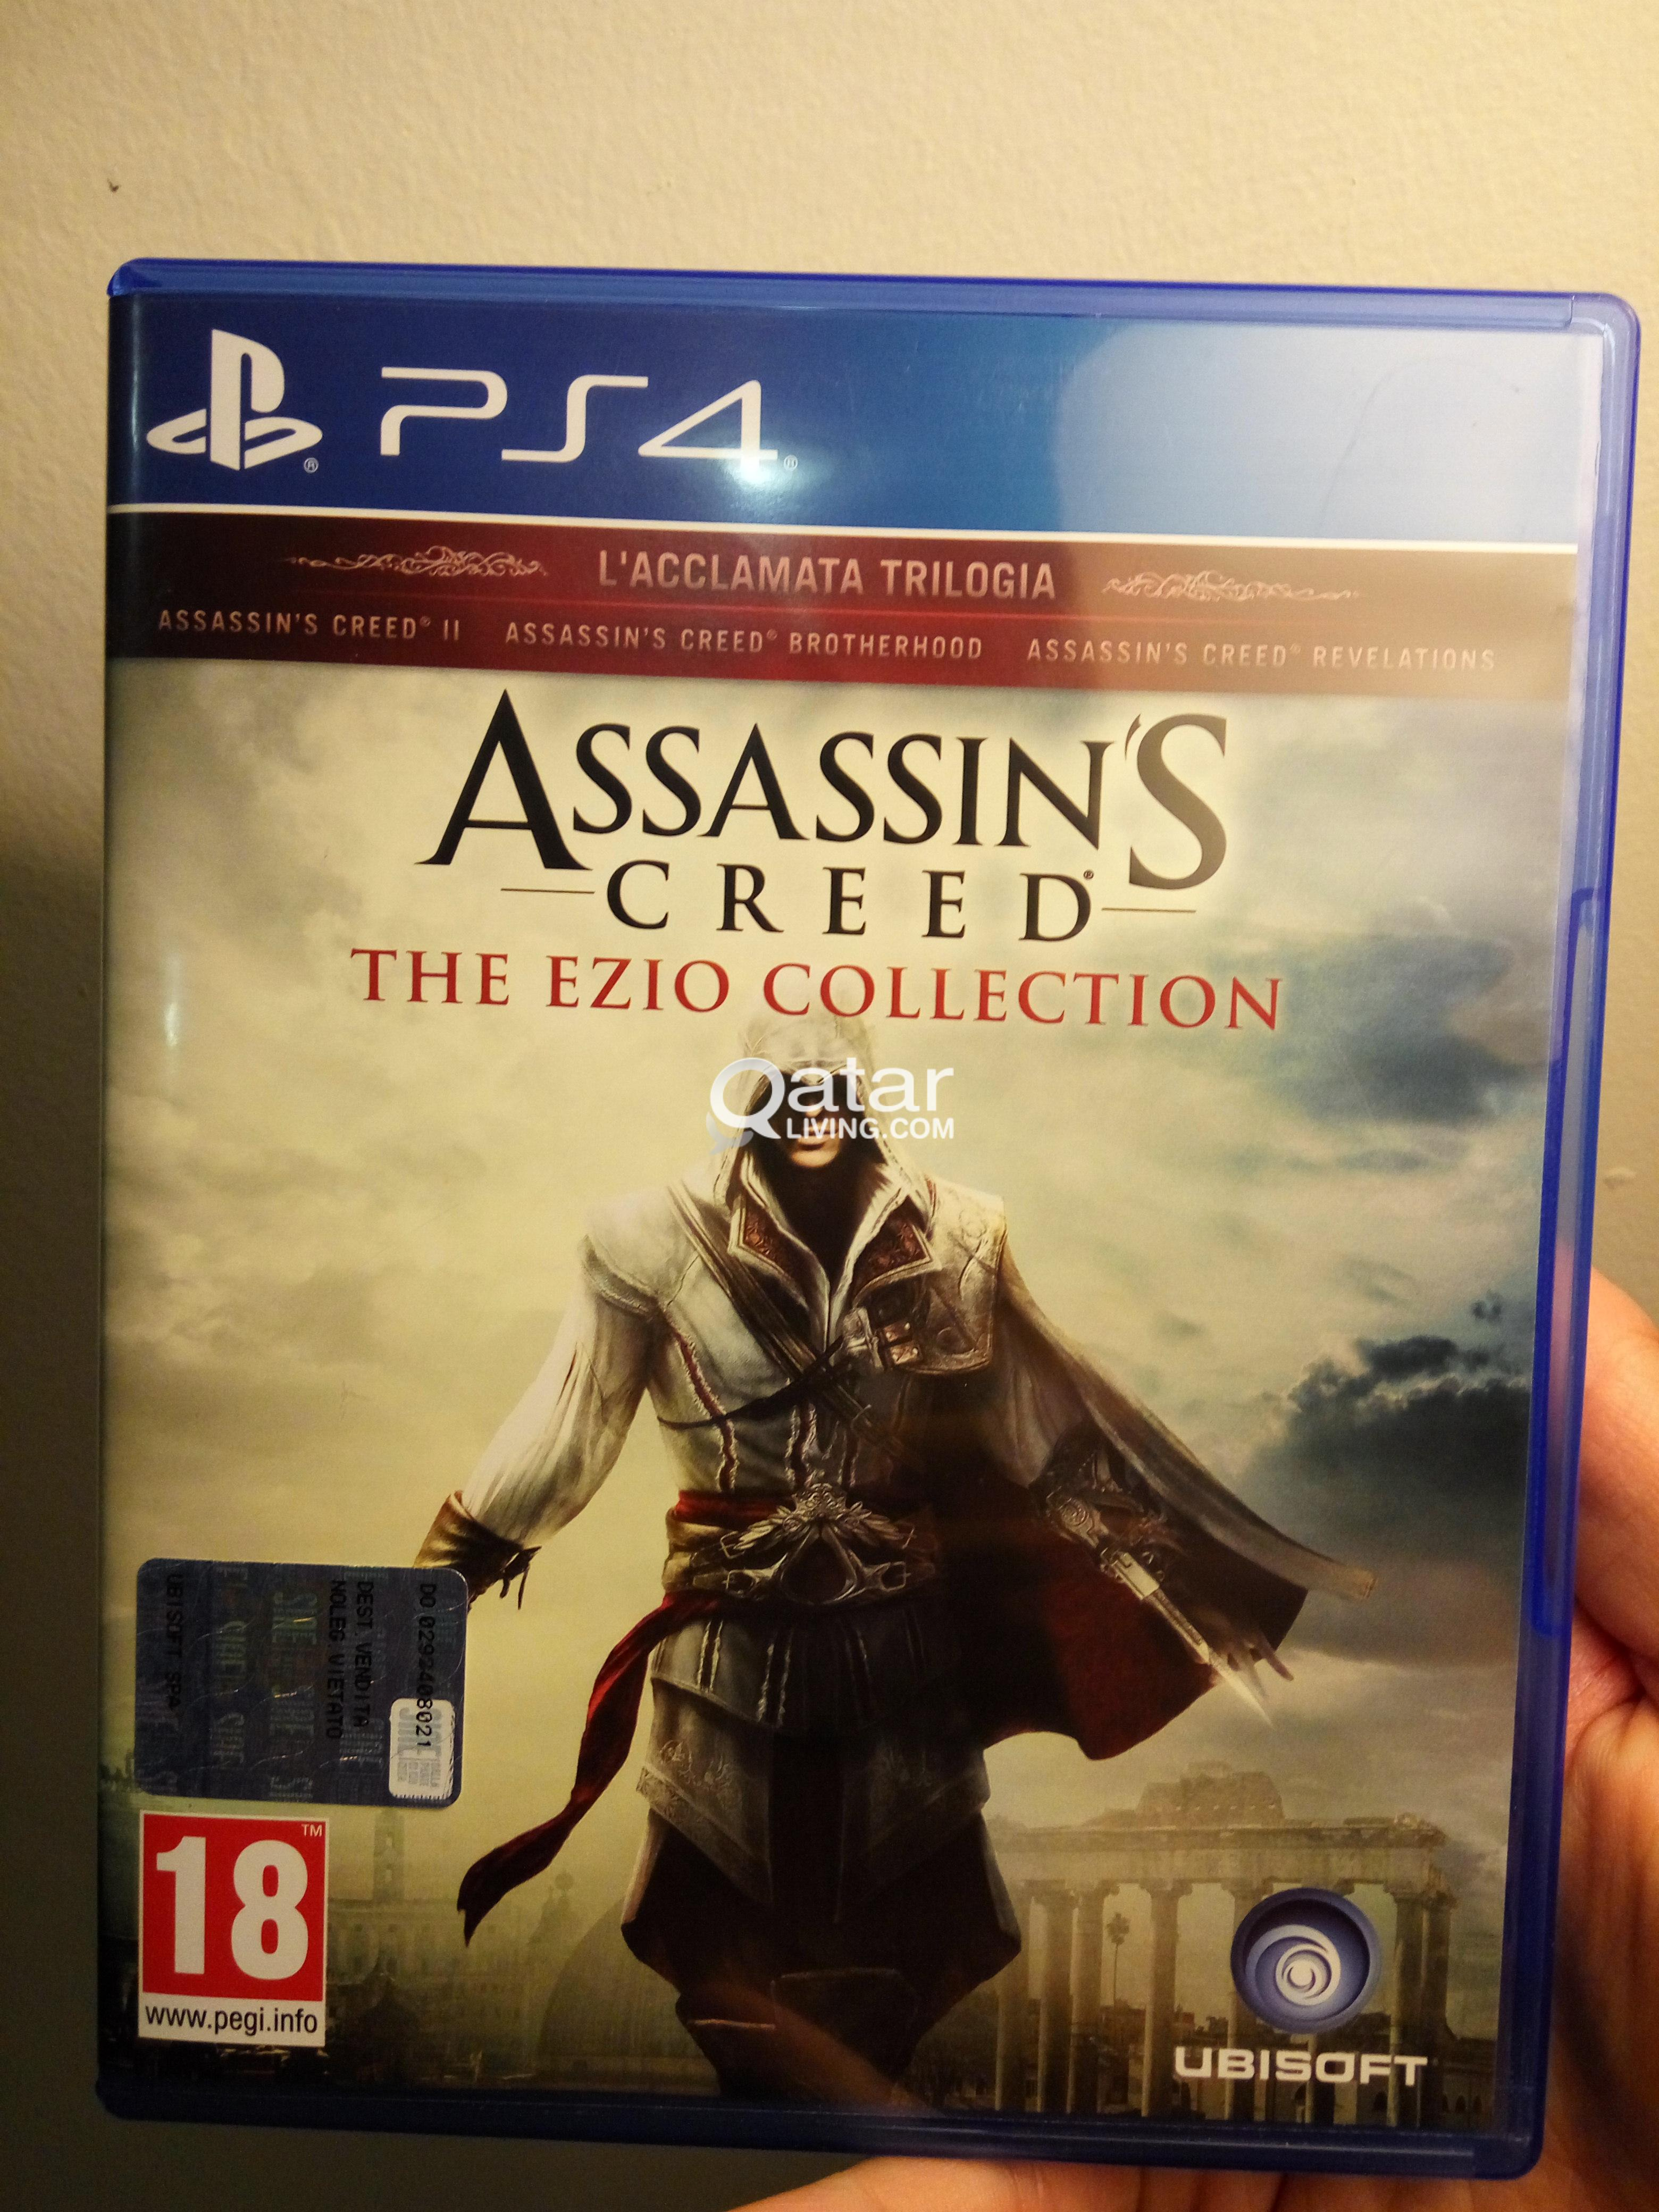 Assassin S Creed Ezio Collection Ps4 Qatar Living